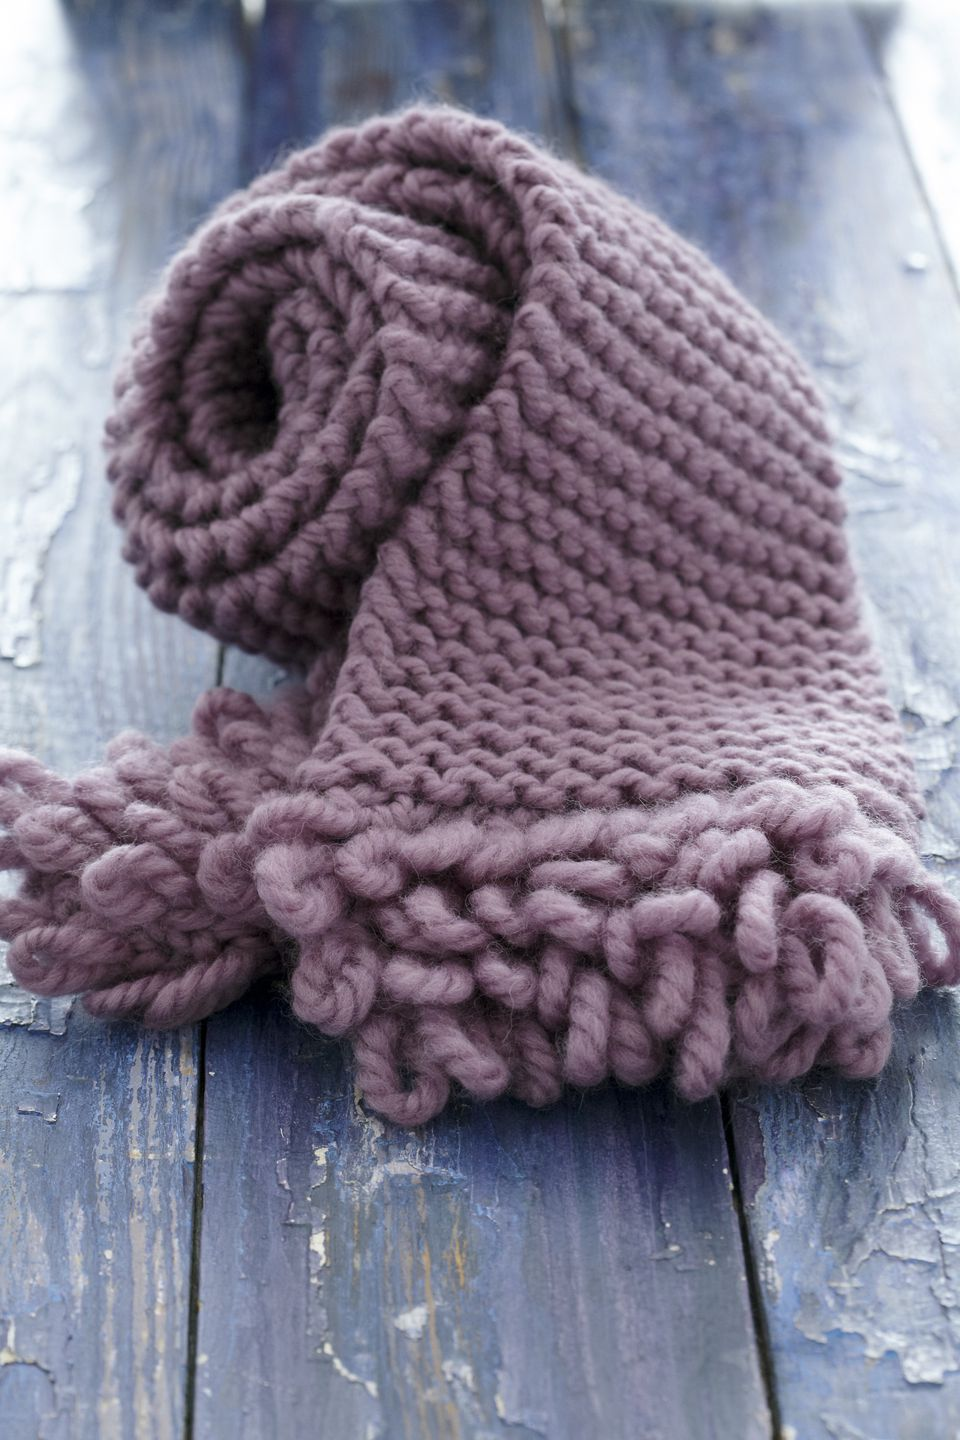 How to Add Fringe to a Crochet or Knit Project recommend